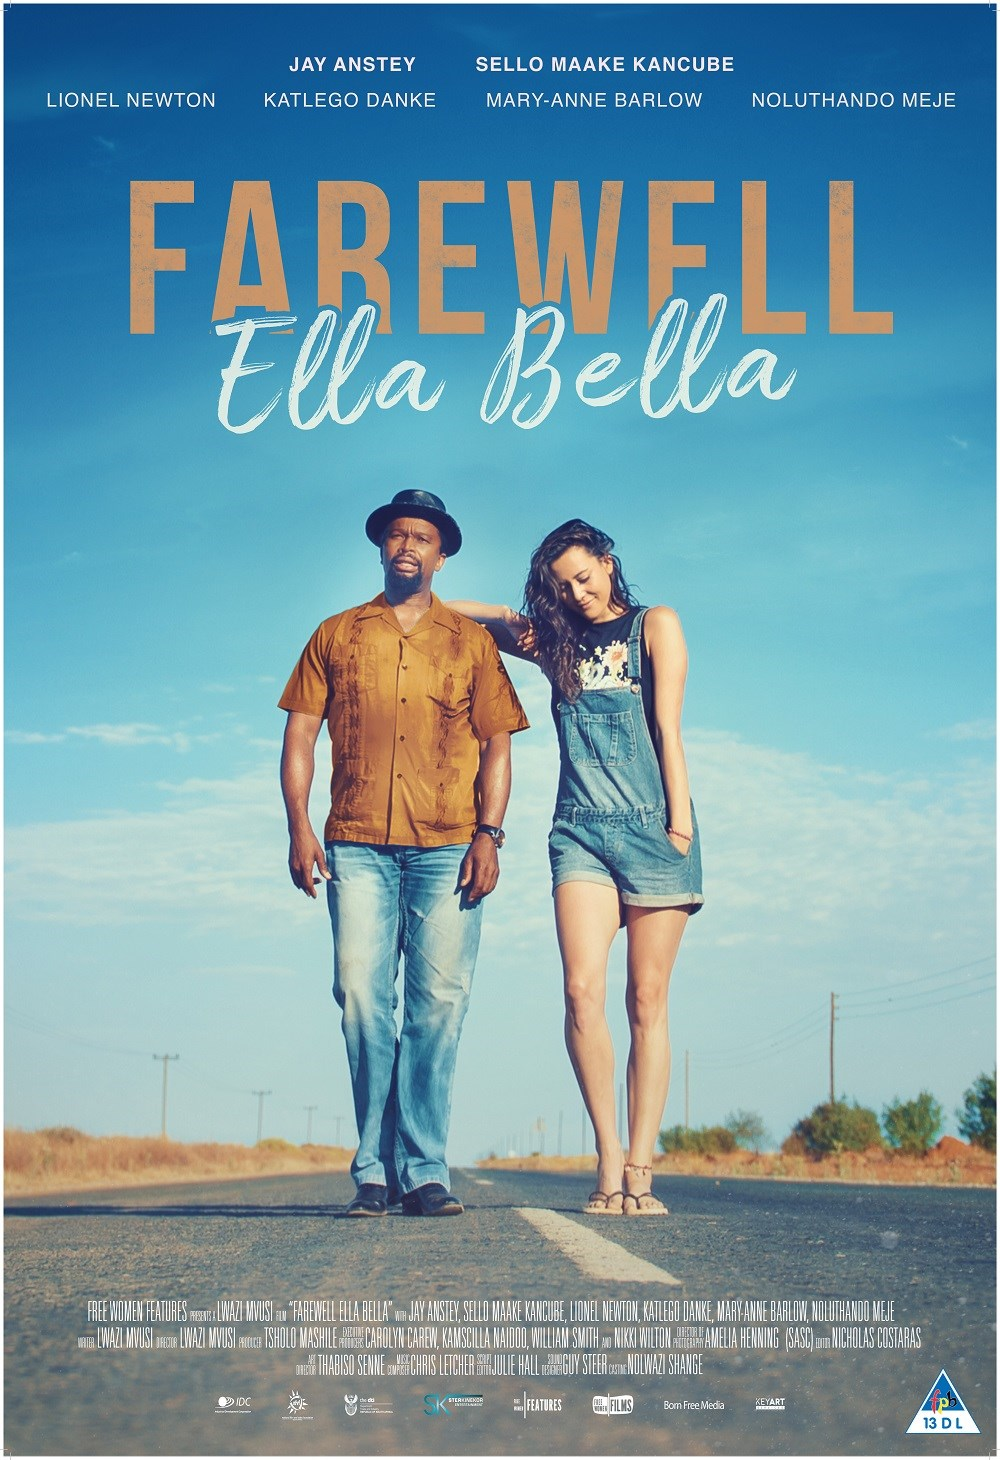 FAREWELL ELLA BELLA now showing at Cavendish Square